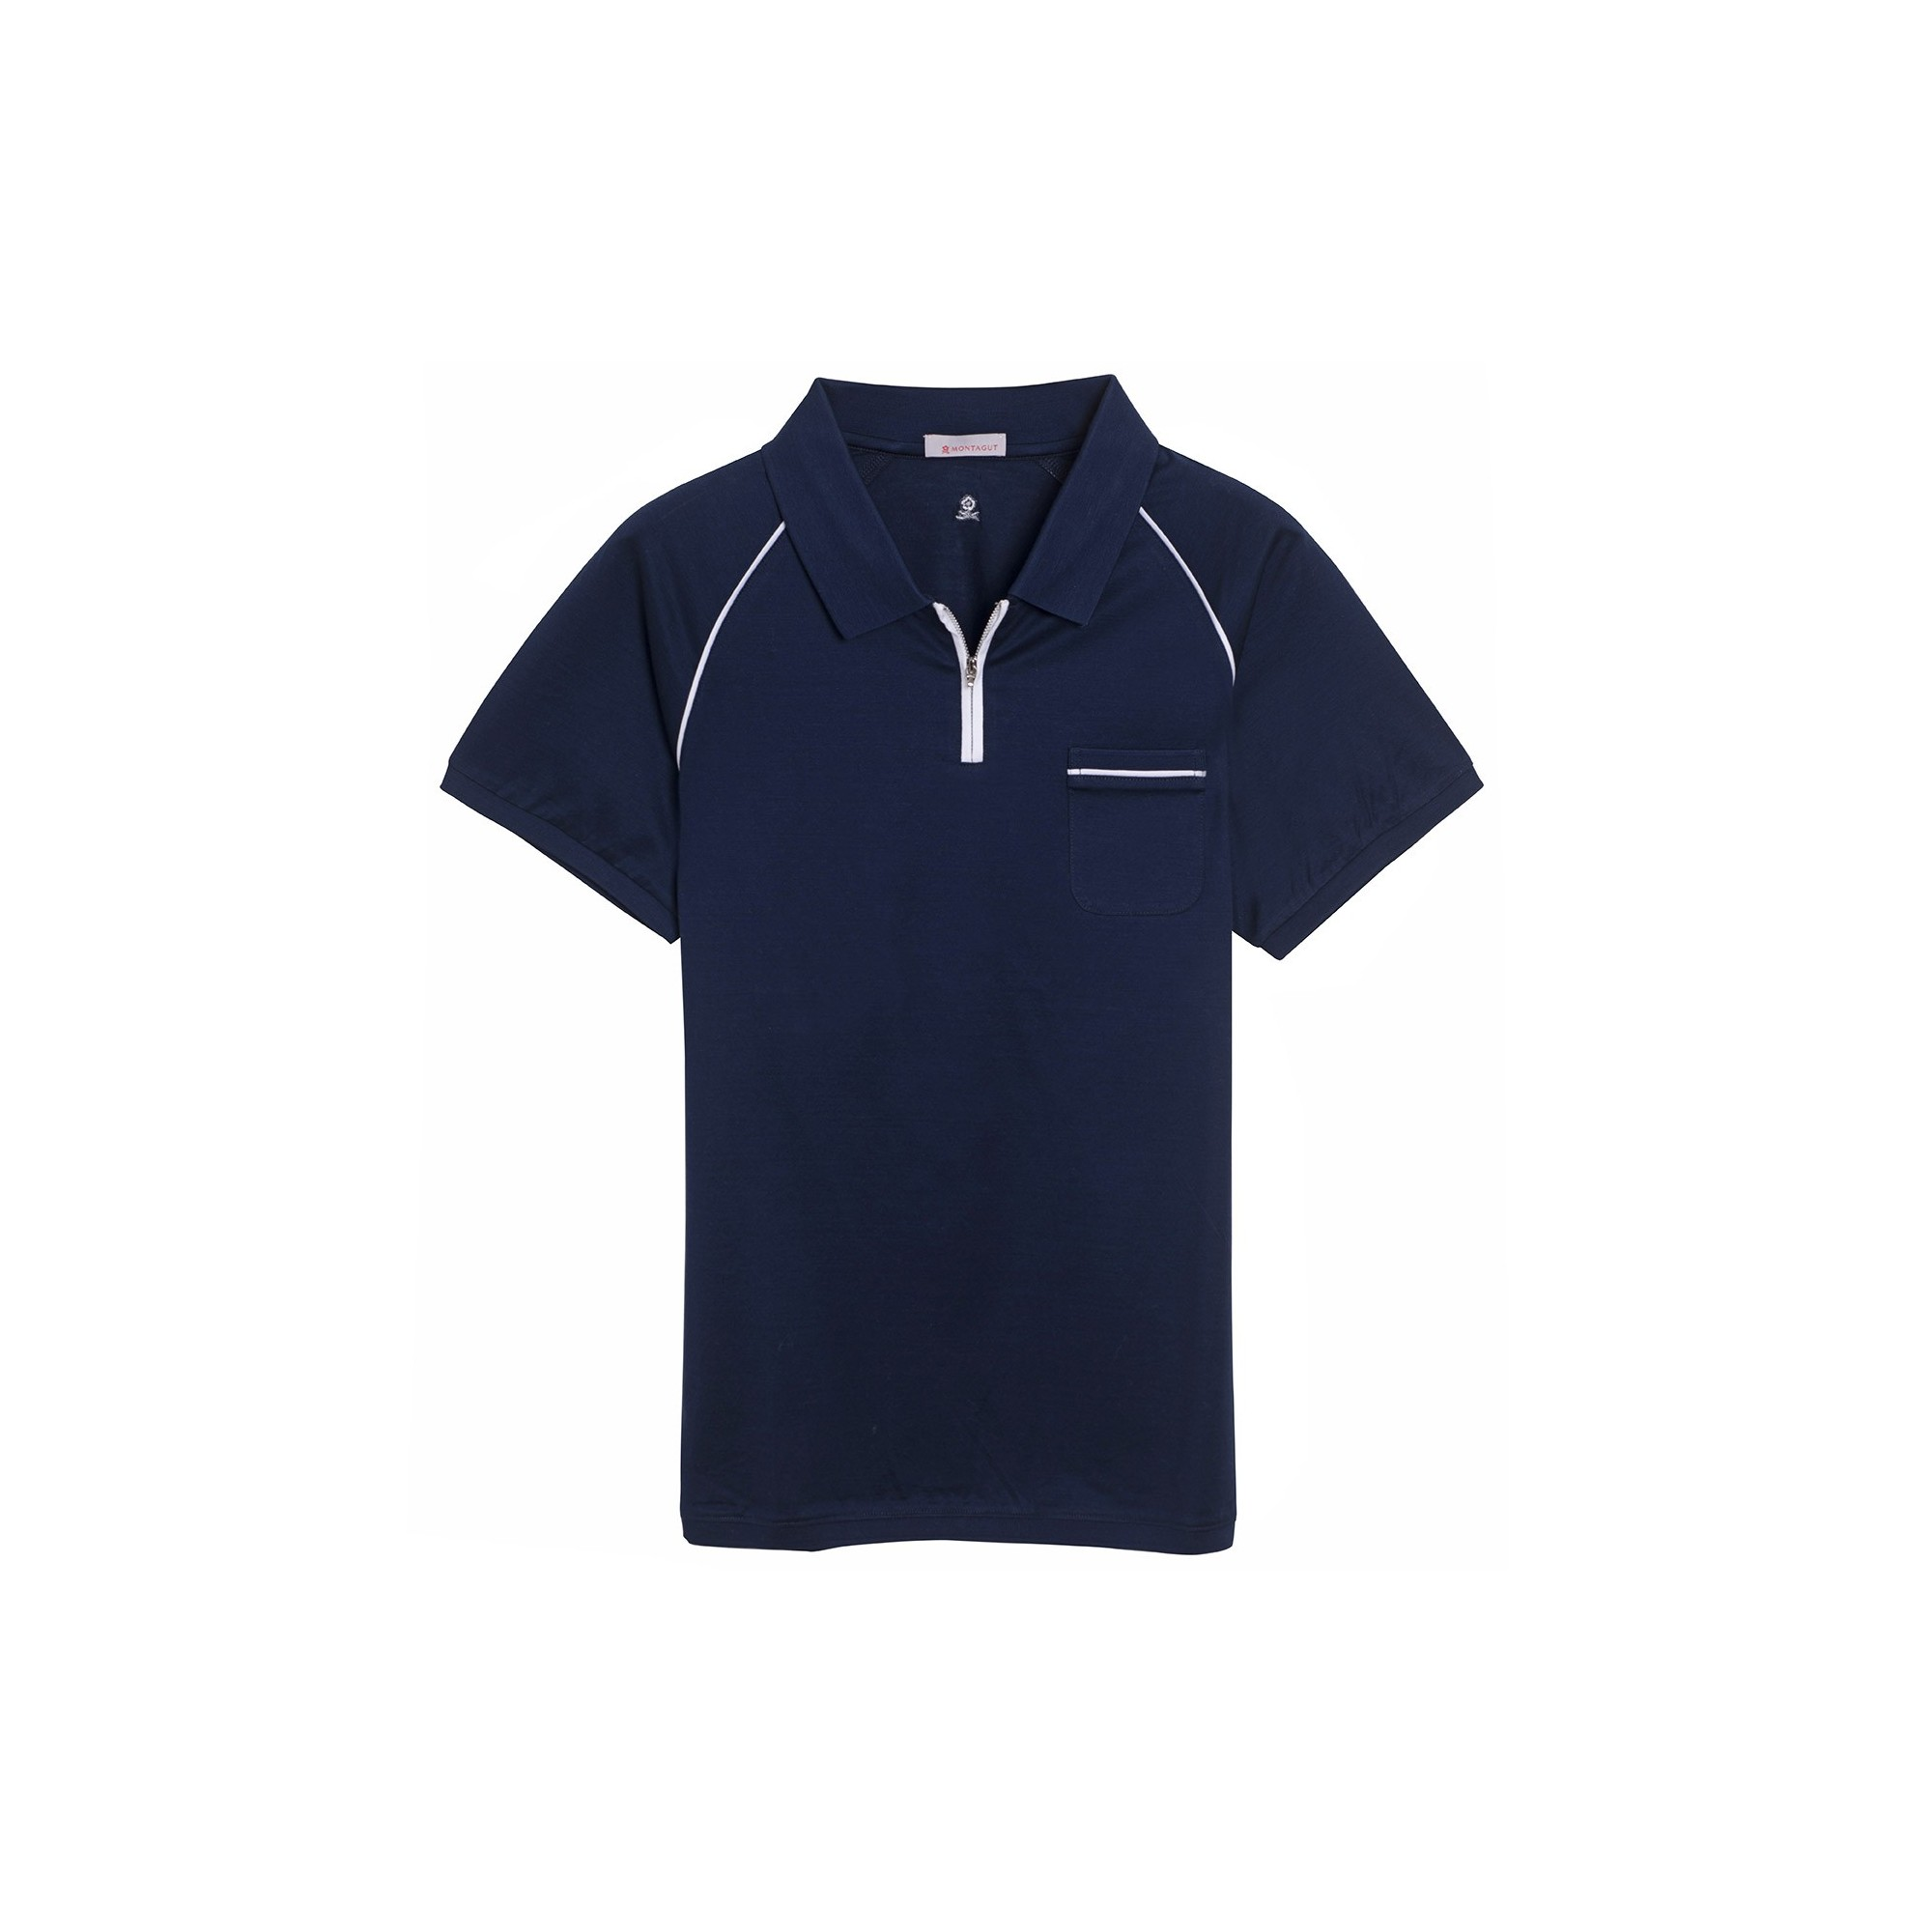 Man zipped collar with pocket fernando for Polo t shirts with pocket online